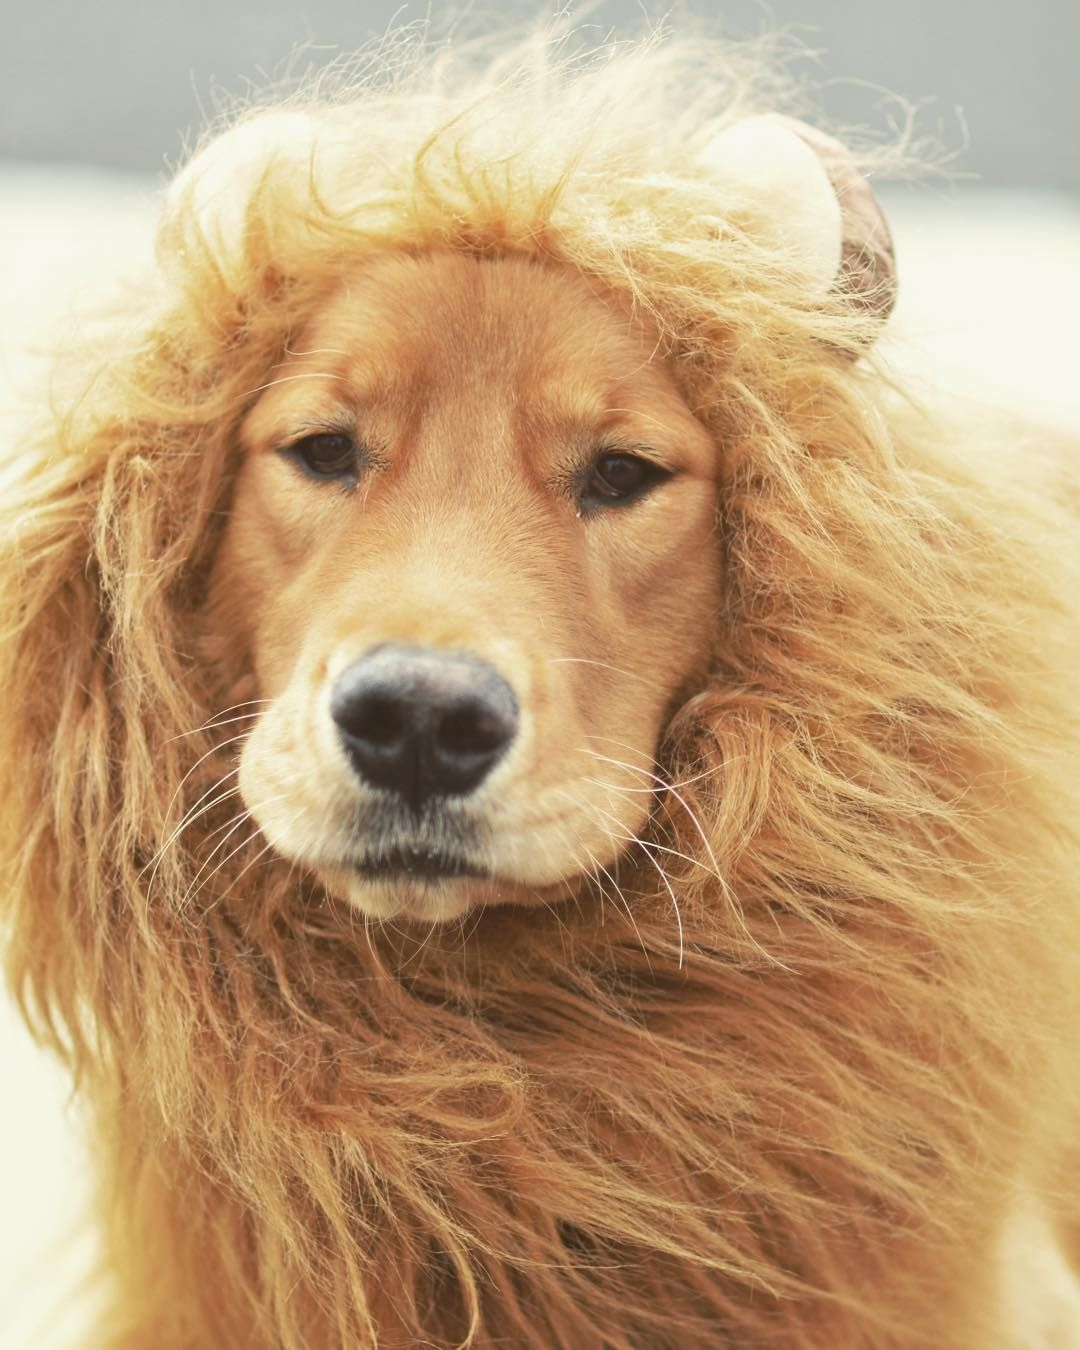 Happy Halloween From The Liog King Goldenmaximus Liondog Lion